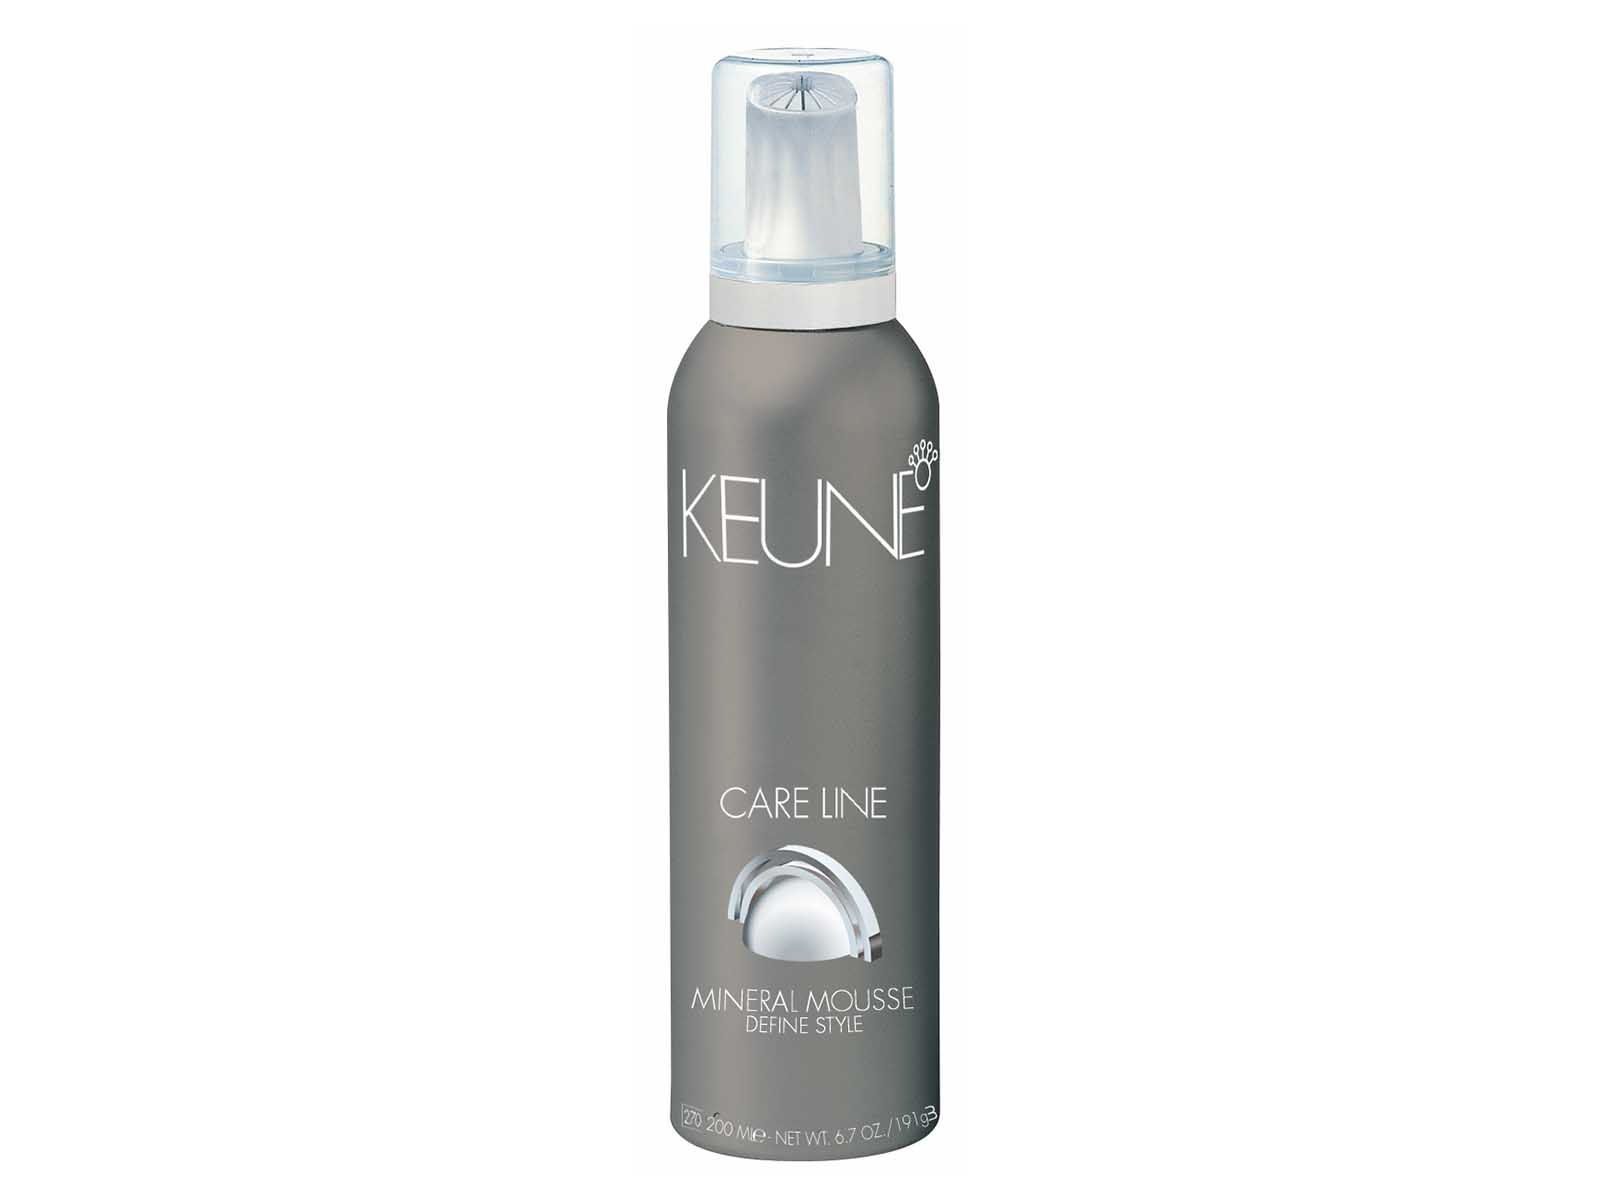 CARE LINE DEFINE STYLE MINERAL MOUSSE